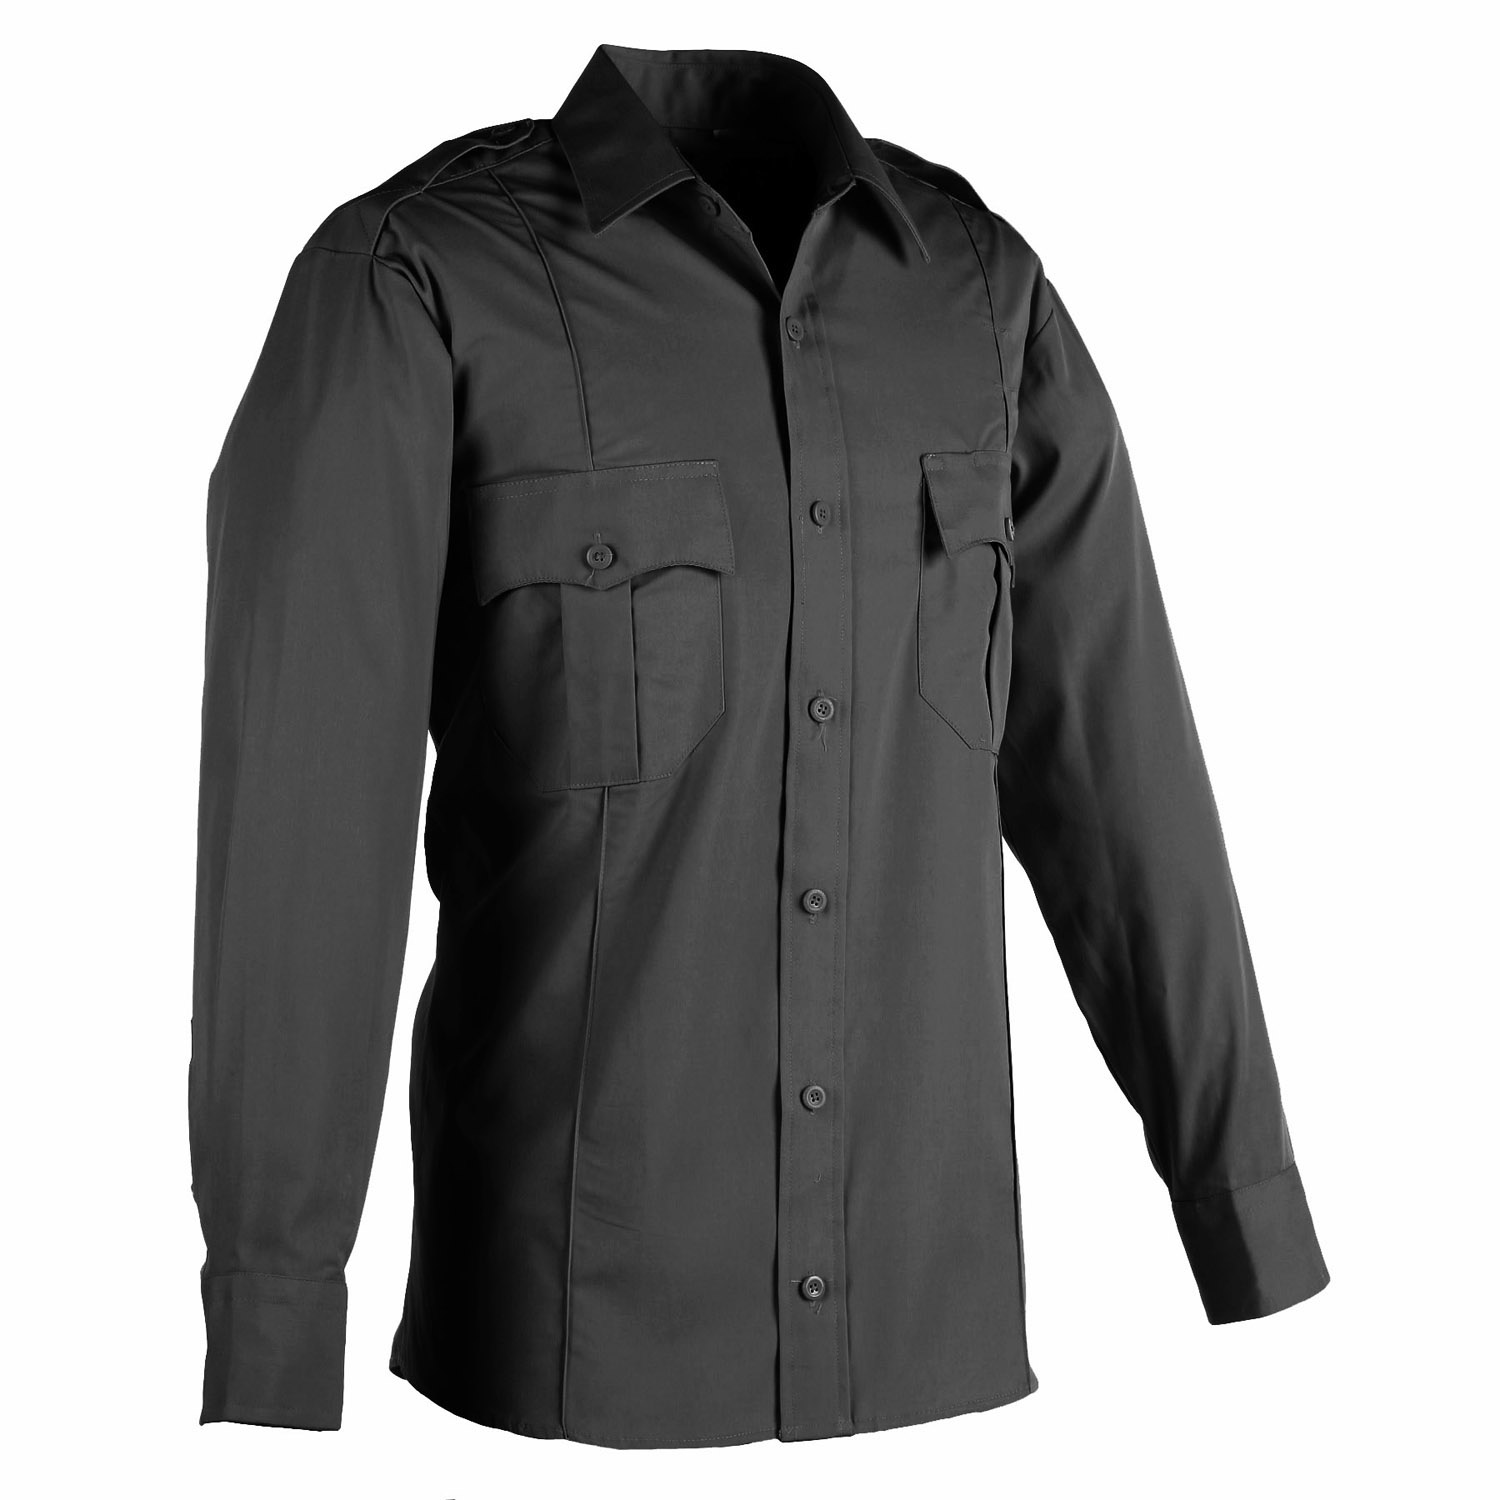 8d025377 LawPro Poly Cotton Long Sleeve Premium Shirt